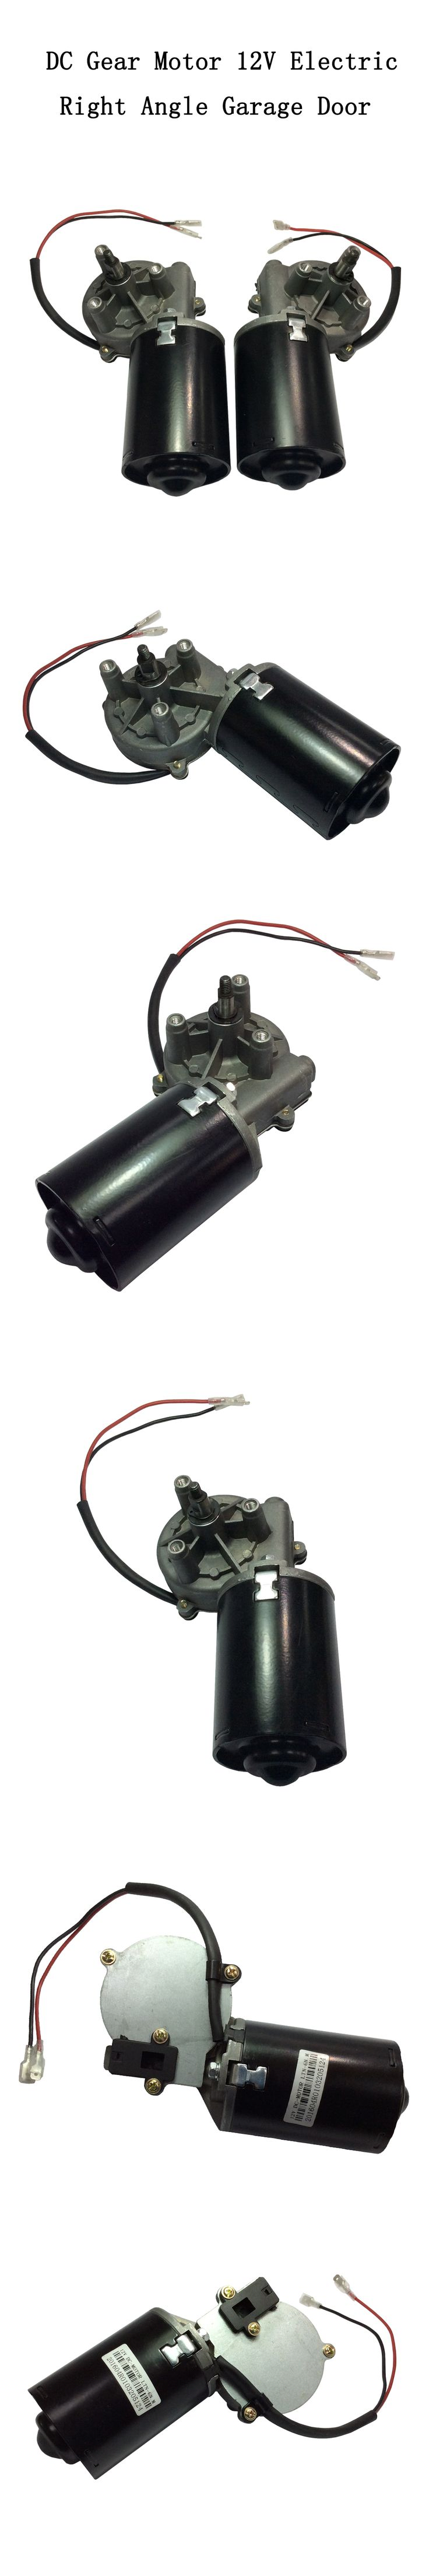 DC Gear Motor High Torque 6N.m Garage Door Raplacement 12V Electric Right Angle Reversible Worm Gear Motor Left Gear-Box